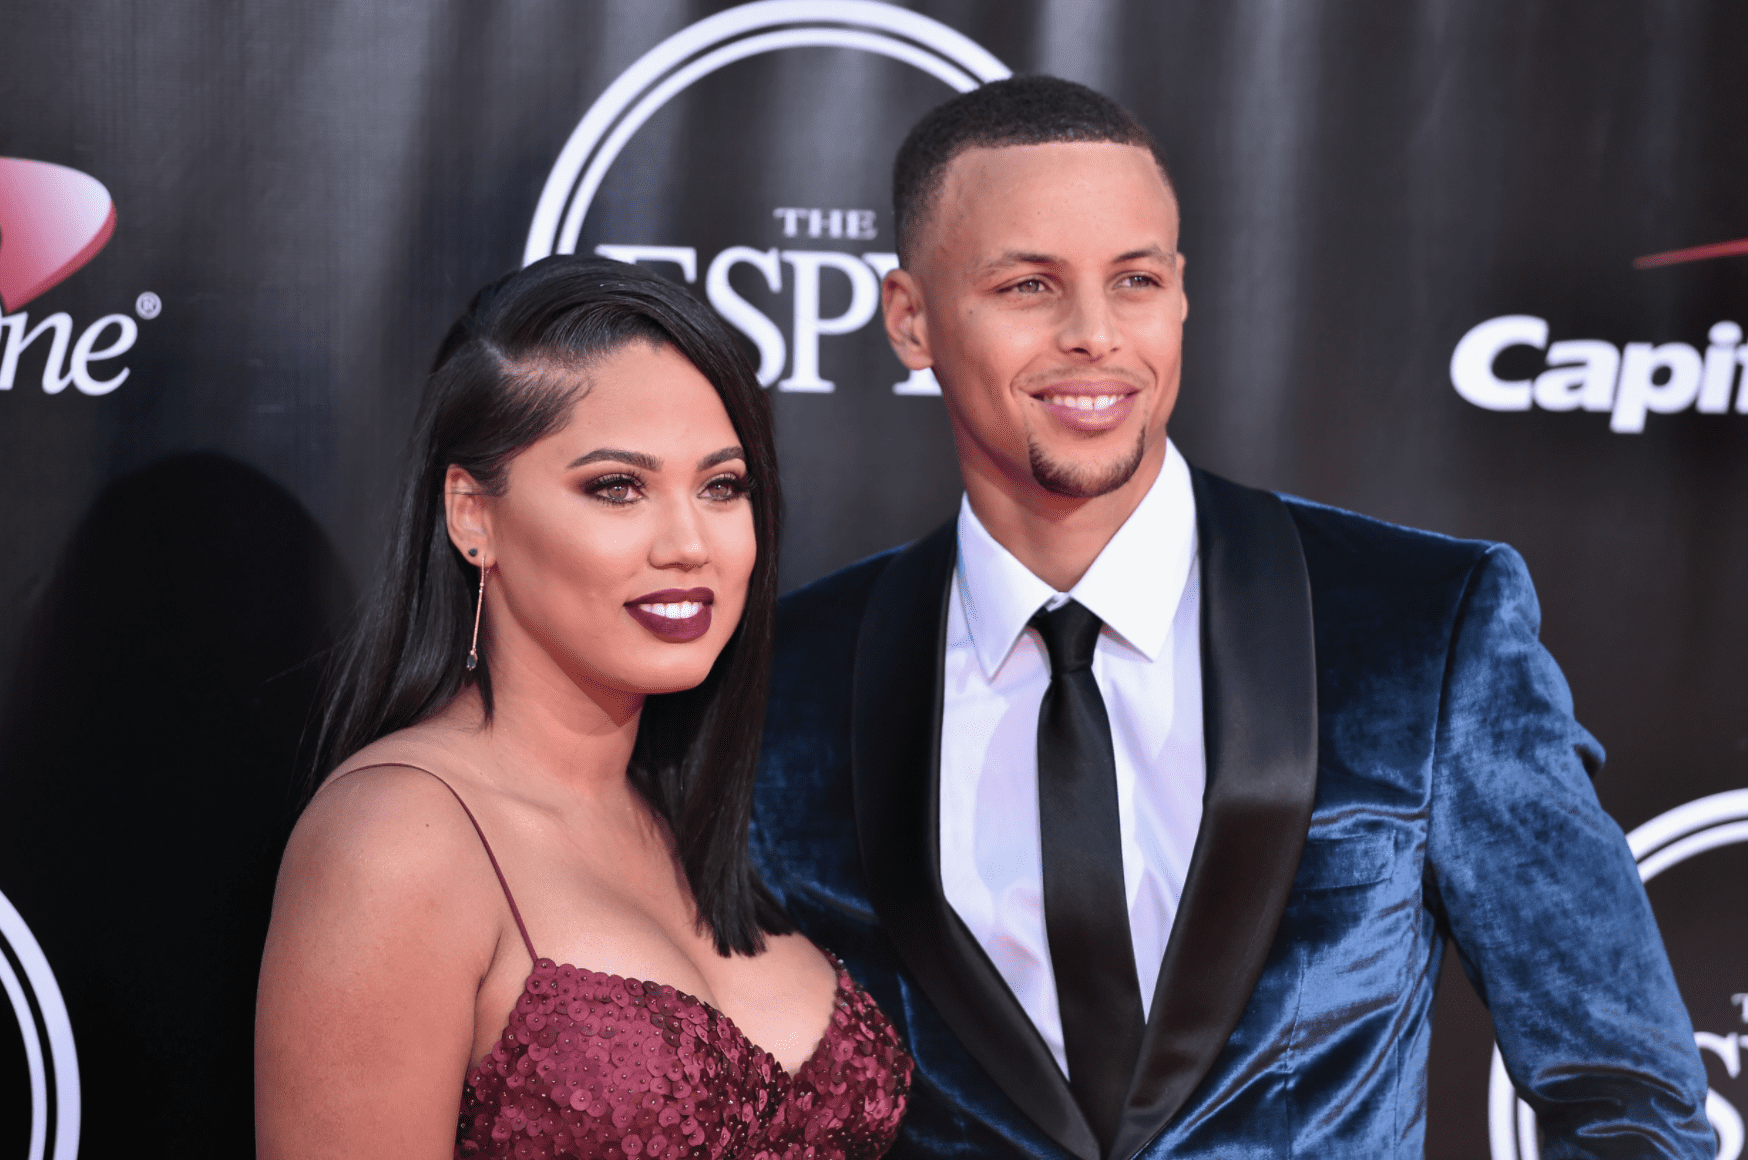 Stephen Curry and Ayesha Curry at the 2016 ESPYS at Microsoft Theater on July 13, 2016. | Source: Getty Images